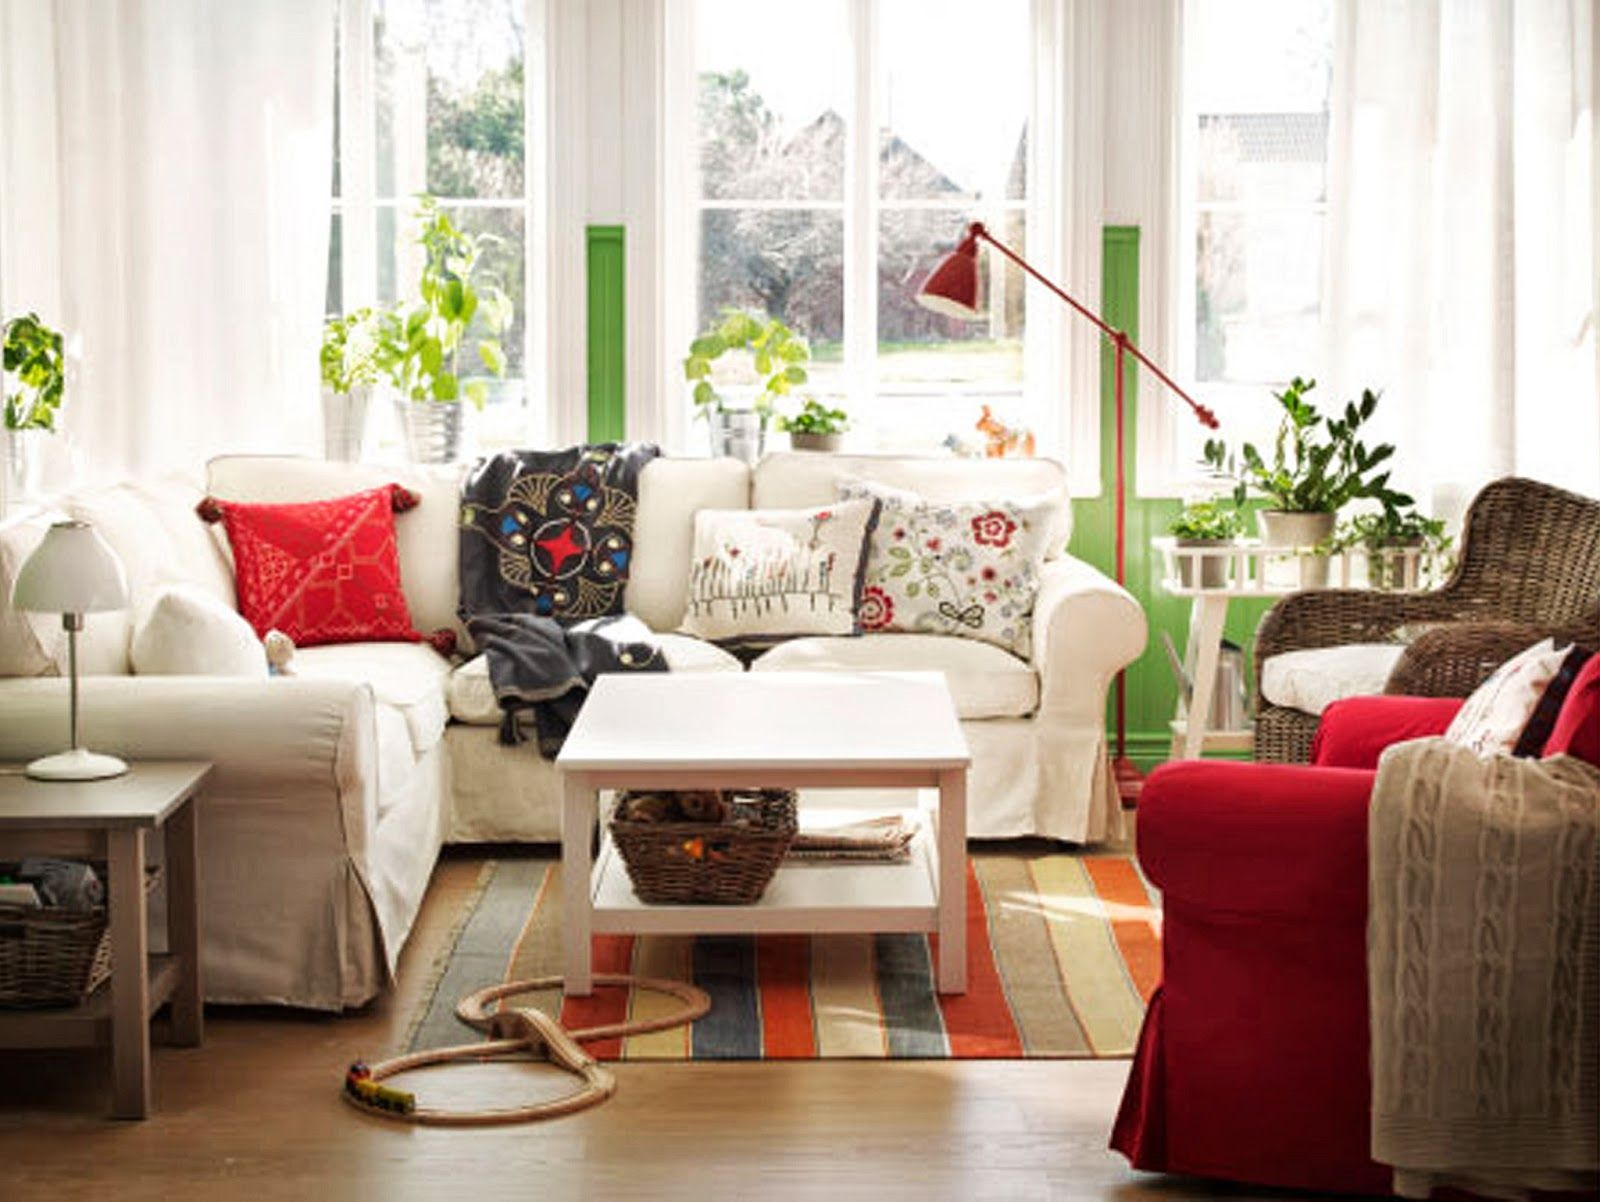 Living Room With Red Sofa  Charming Ikea Small Living Room Extraordinary Ikea Small Living Room Ideas Decorating Inspiration